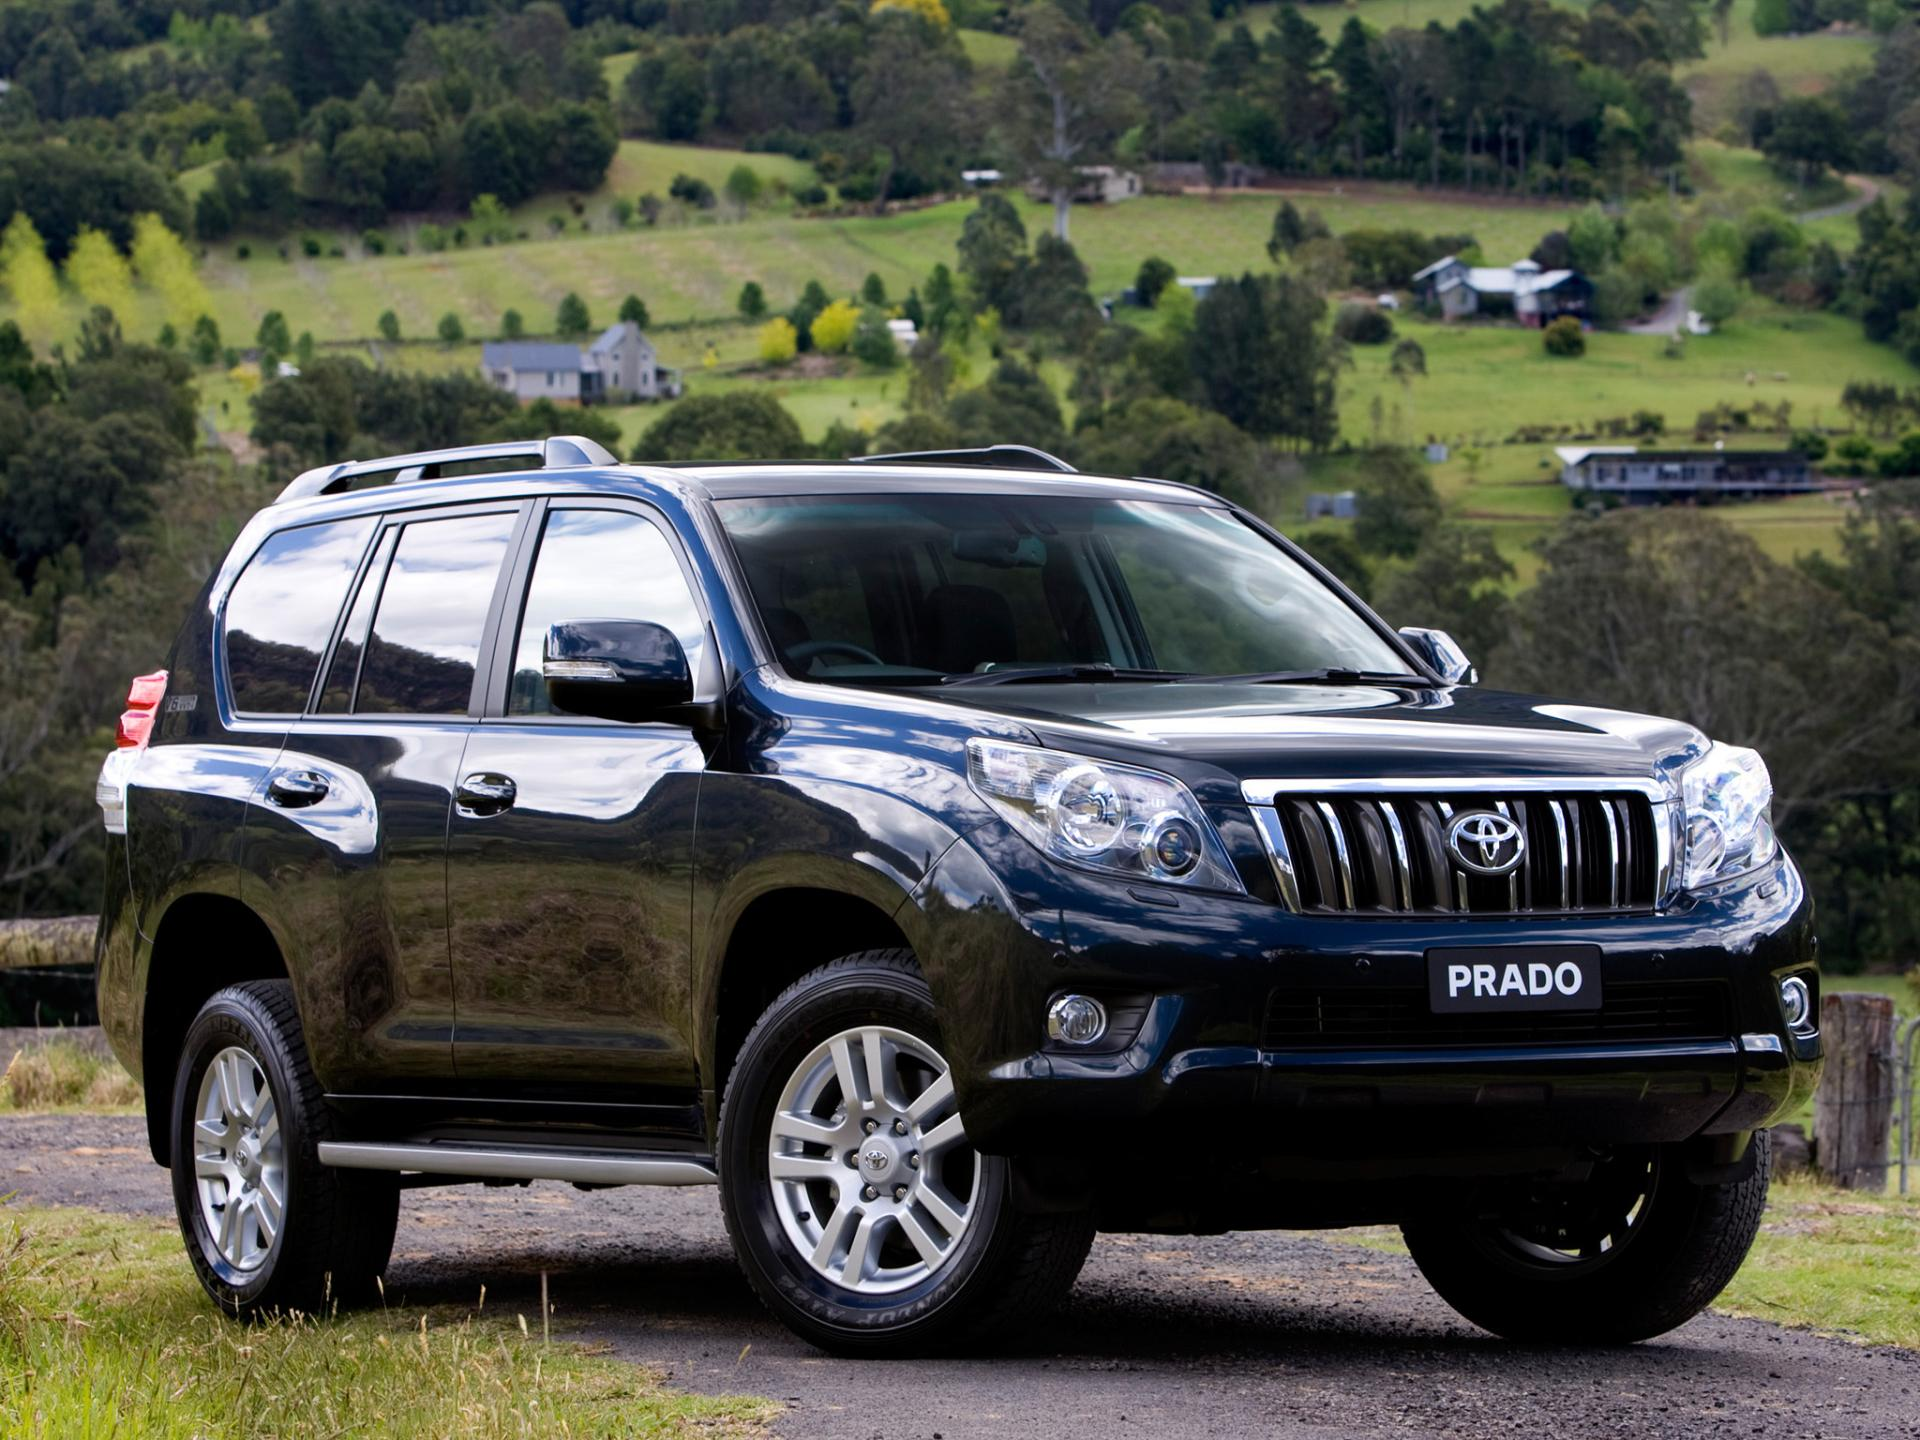 toyota land cruiser prado wallpaper hd download. Black Bedroom Furniture Sets. Home Design Ideas